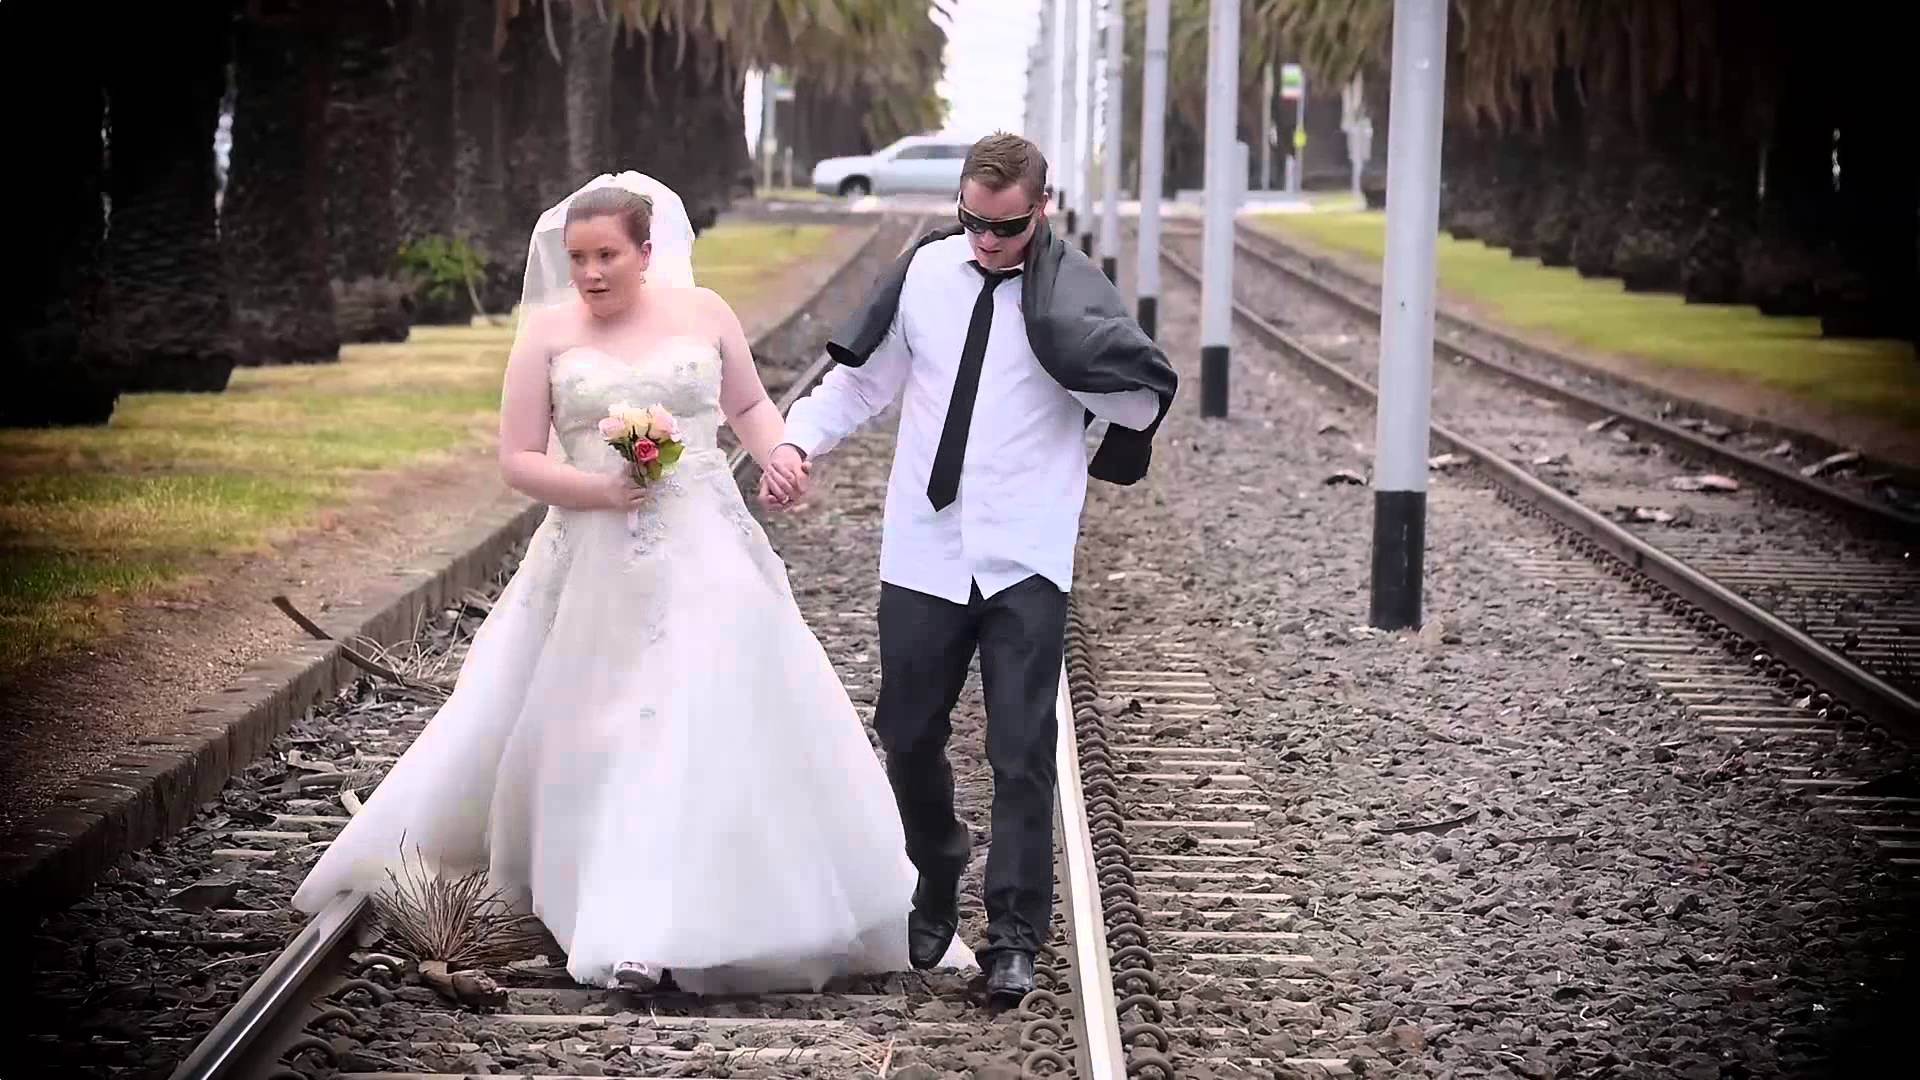 Funny Wedding Reception Entrance Wedding Reception Entrance Wedding Humor Wedding Videos